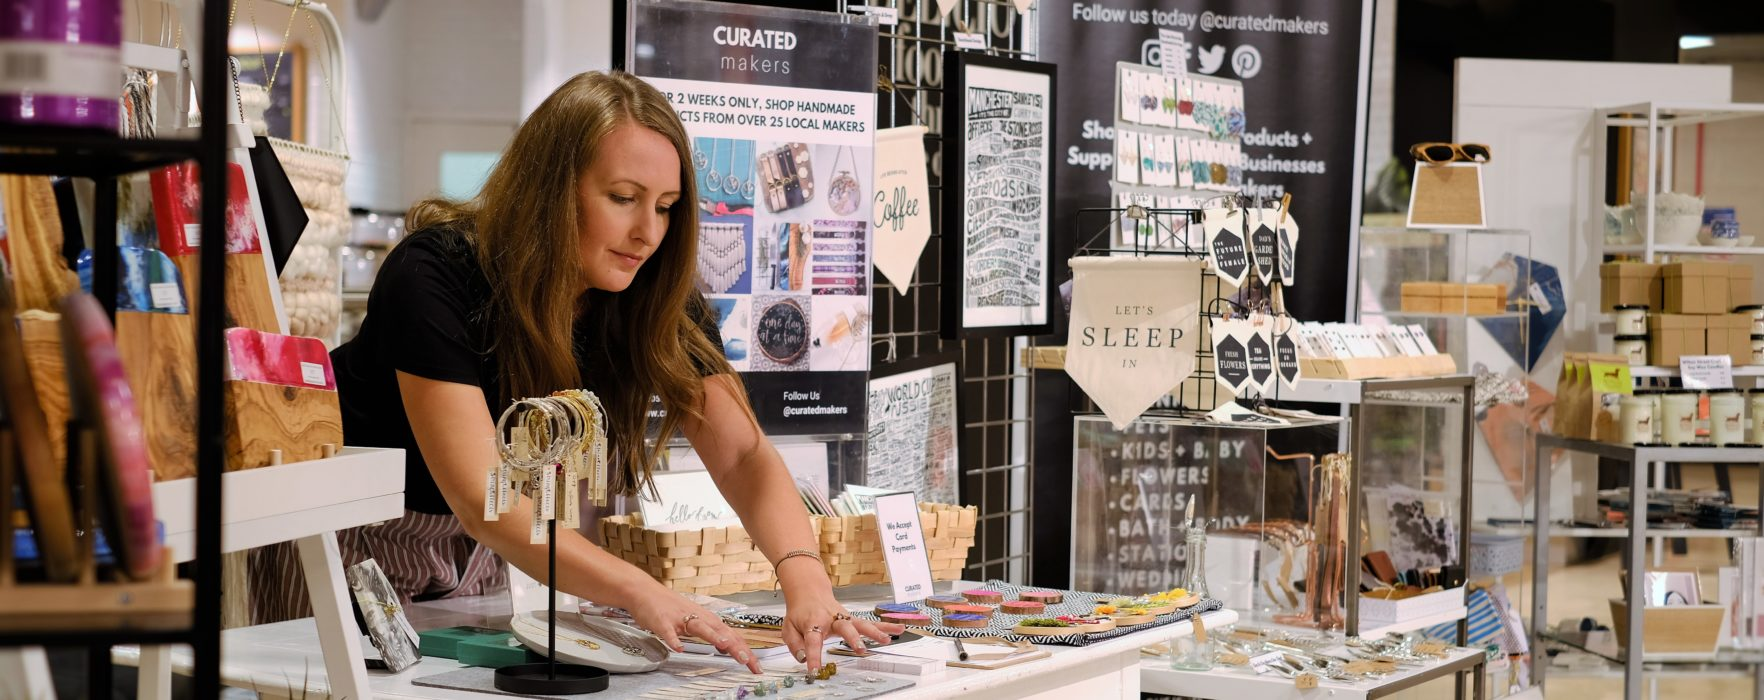 Curated Makers champion local indies with a prime pop-up at Debenhams